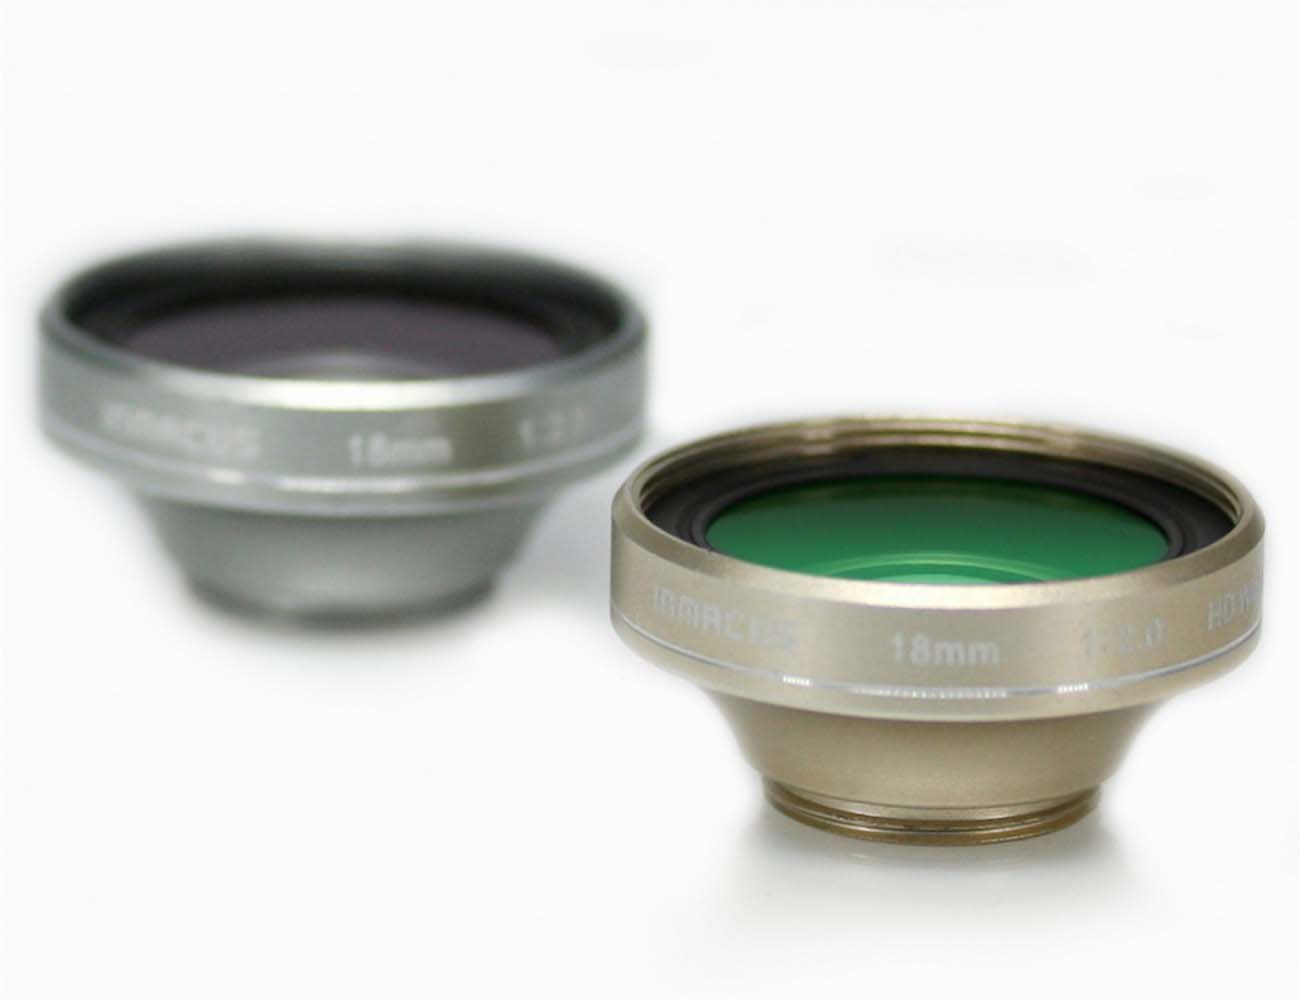 iphone lens kit. inmacus 18mm hd lens kit and macro for iphone 6/6+ iphone